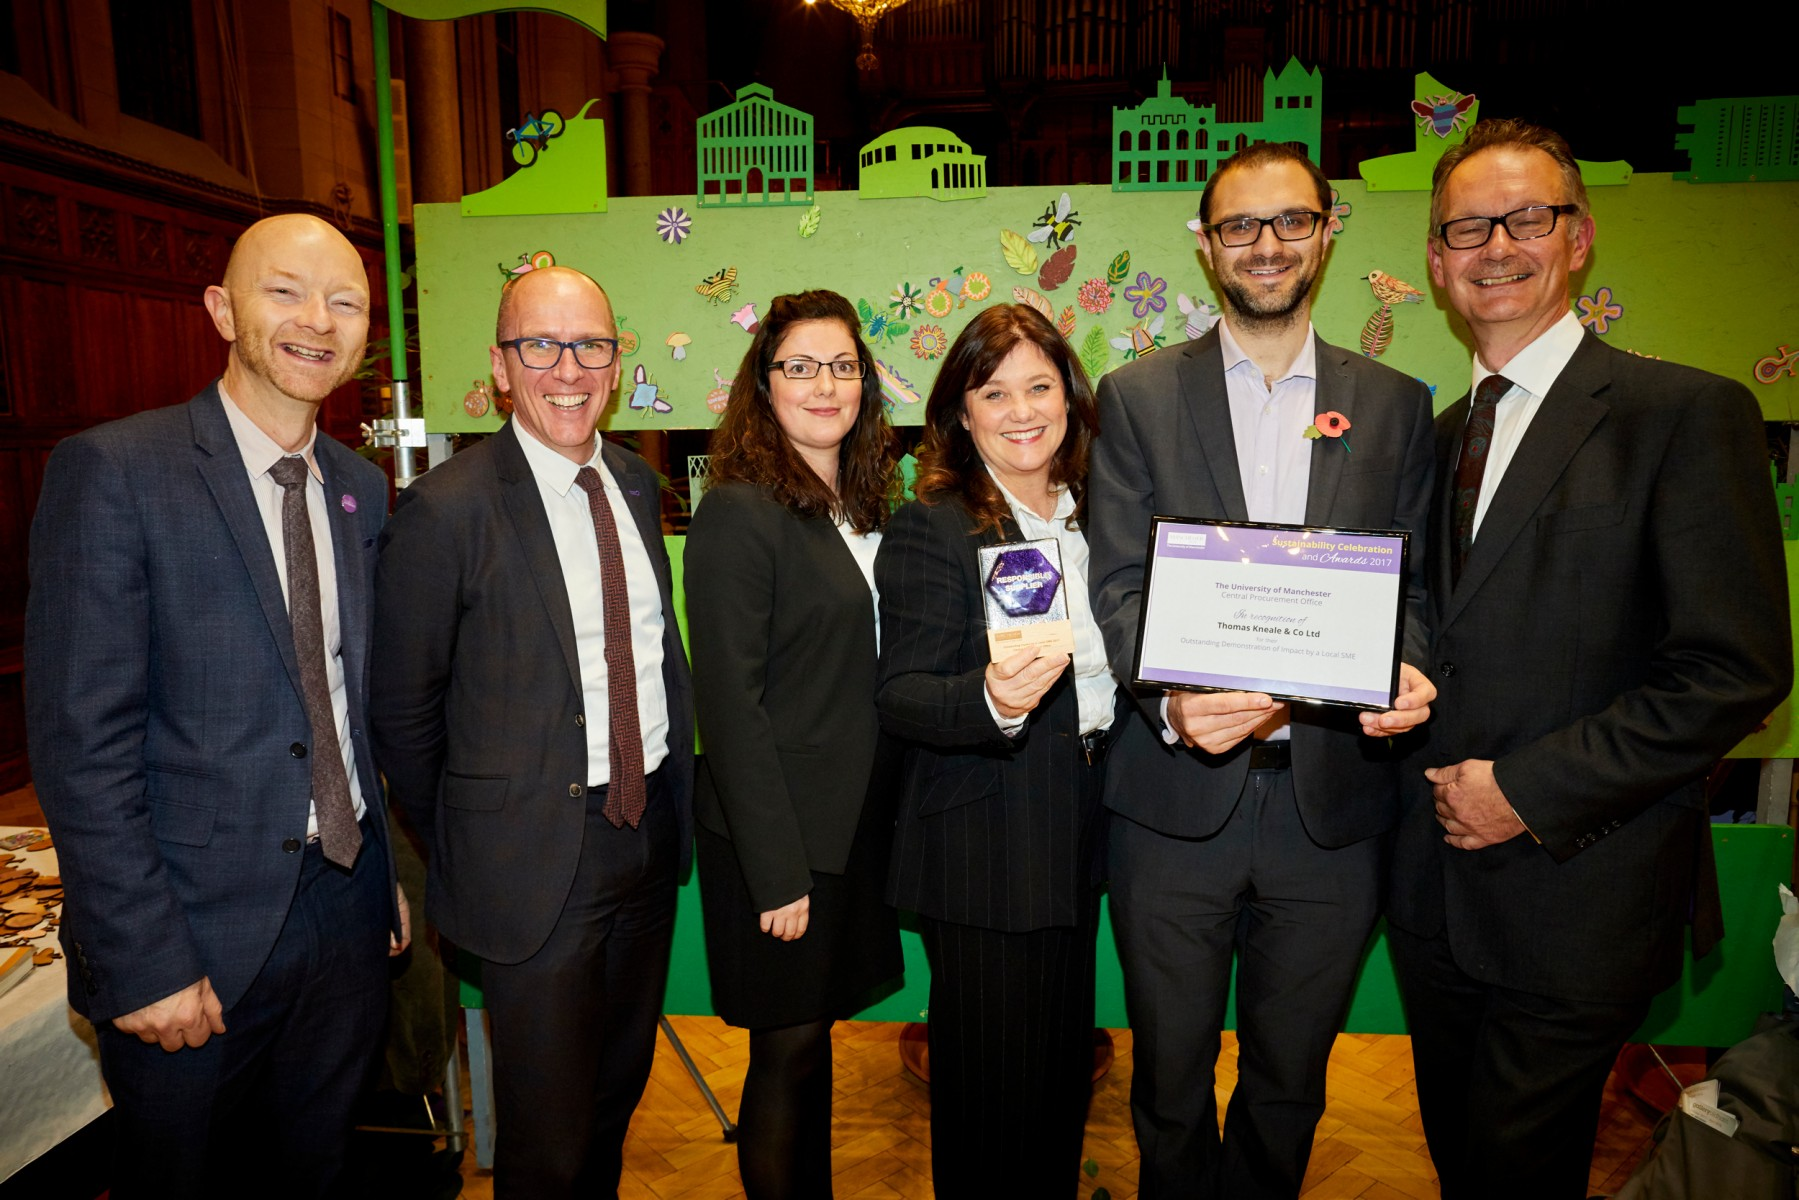 Winners at the Responsible Suppliers Awards 2017